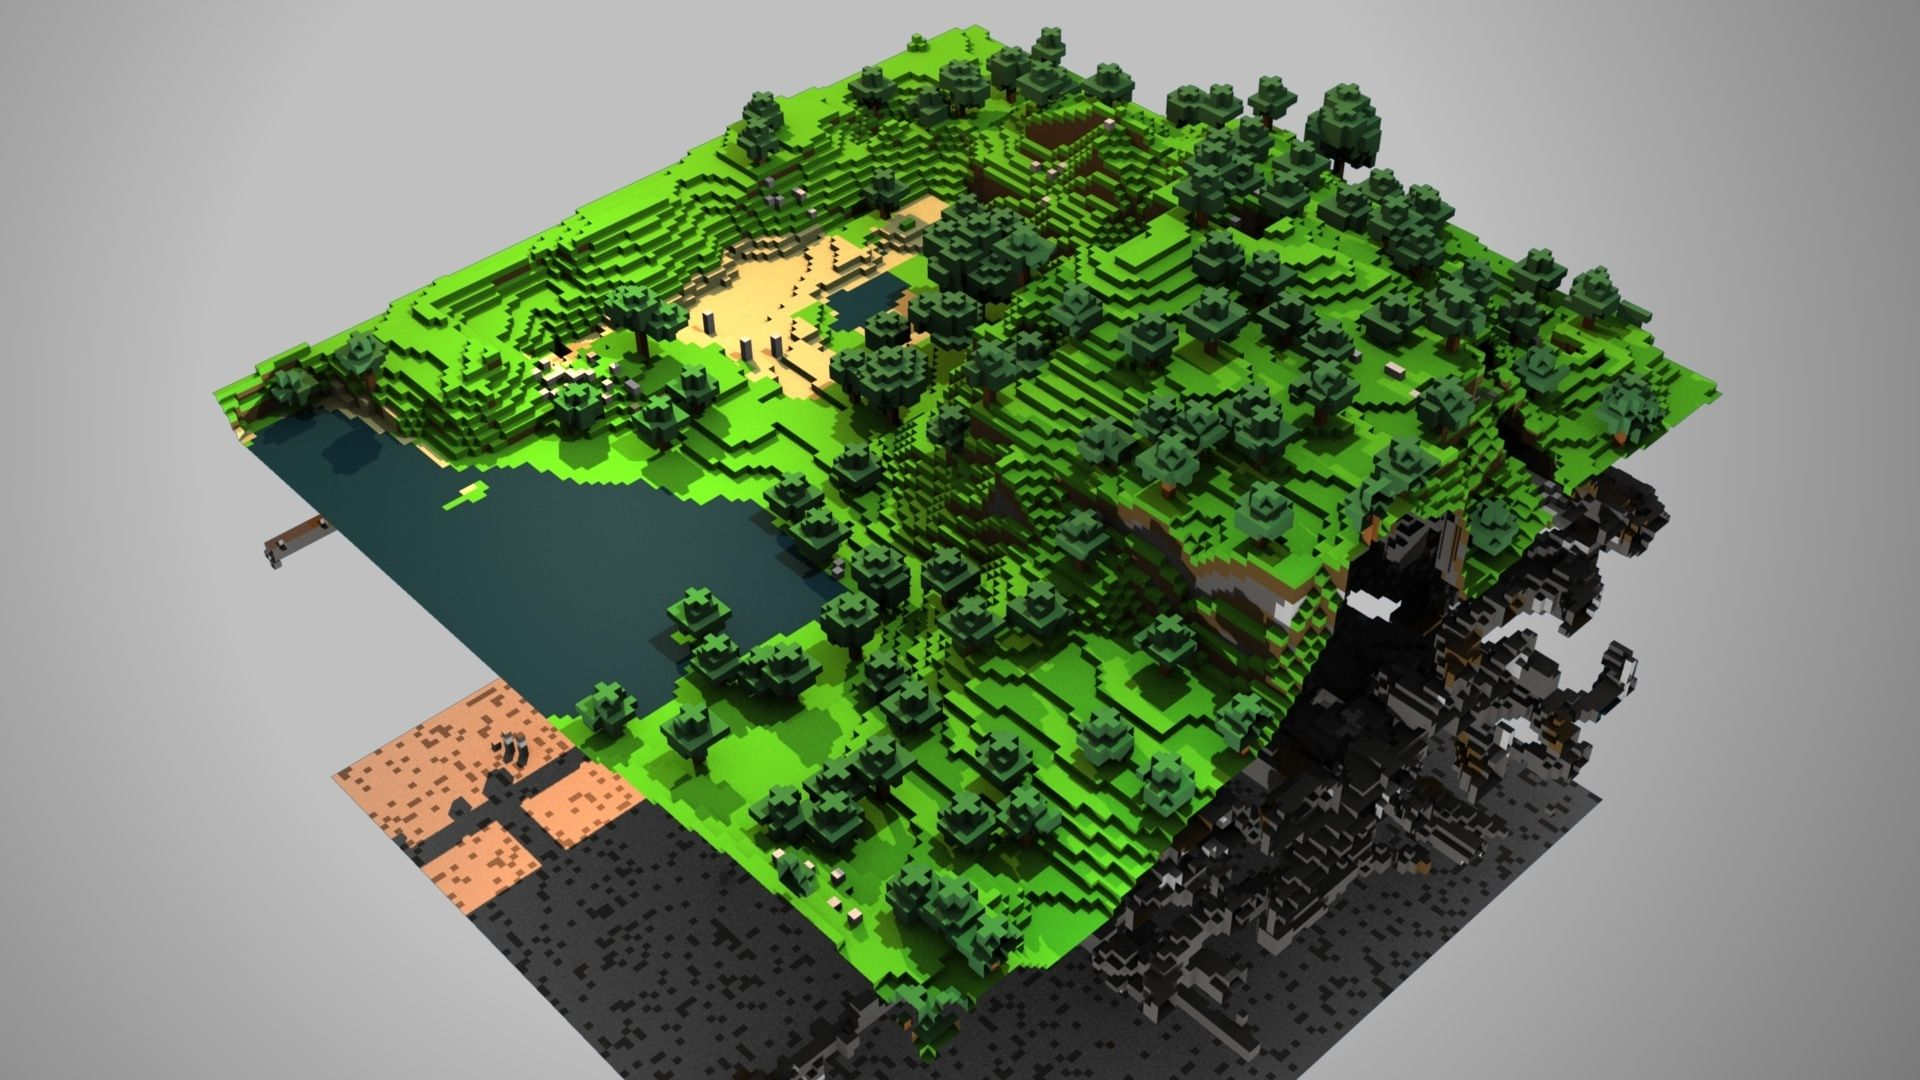 Adorable Minecraft Ground Trees Lake Wallpaper Kuff Games